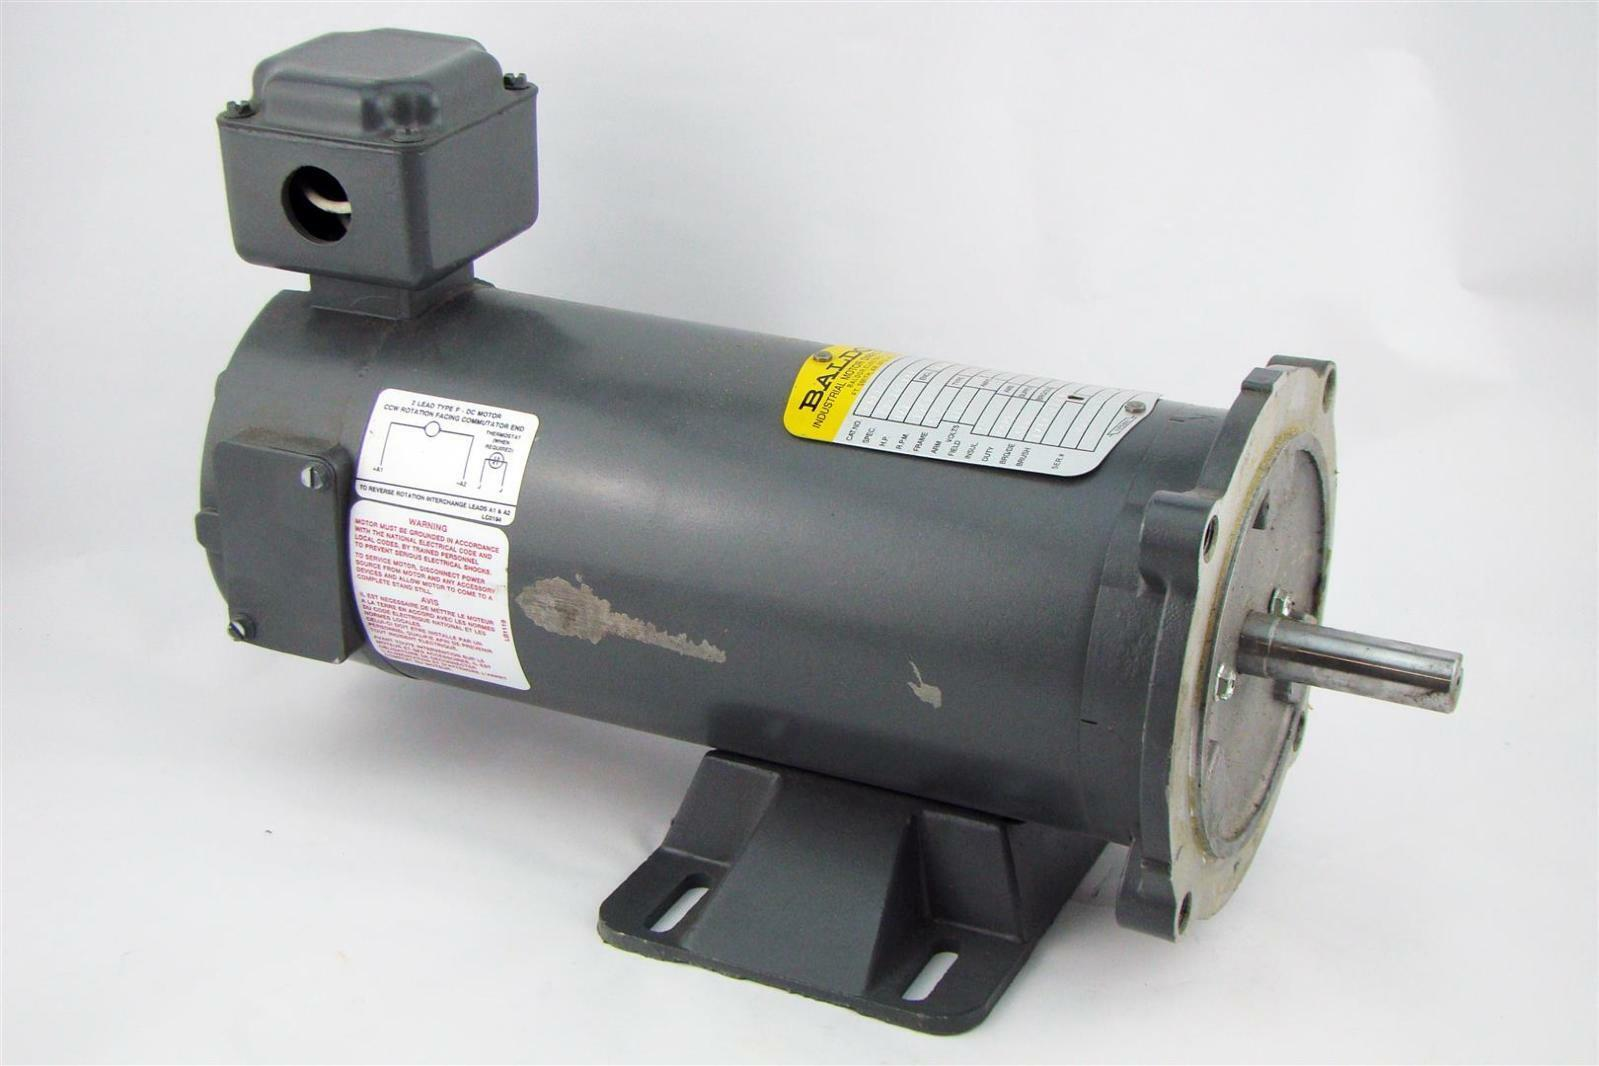 Baldor dc industrial motor 1 2hp 1750rpm 180v cdp3326 for Used industrial electric motors